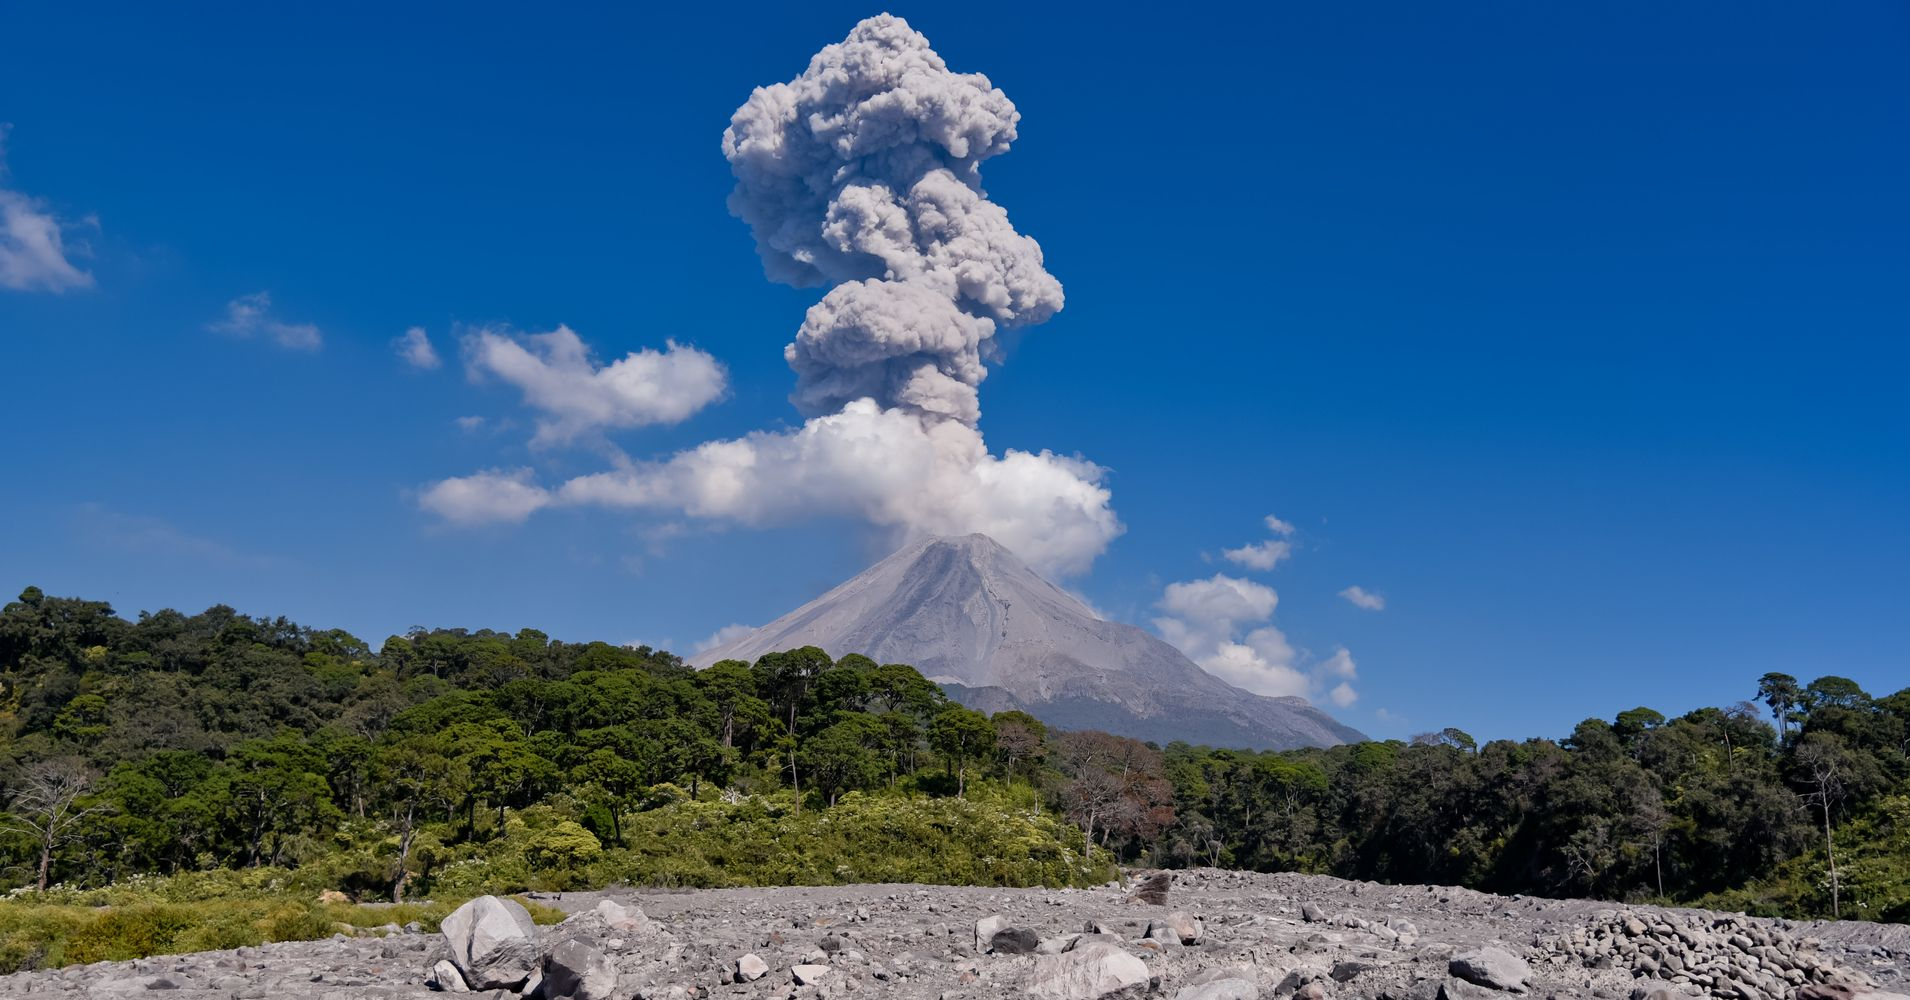 Climate Change Could Trigger More Volcanic Eruptions, Study Finds